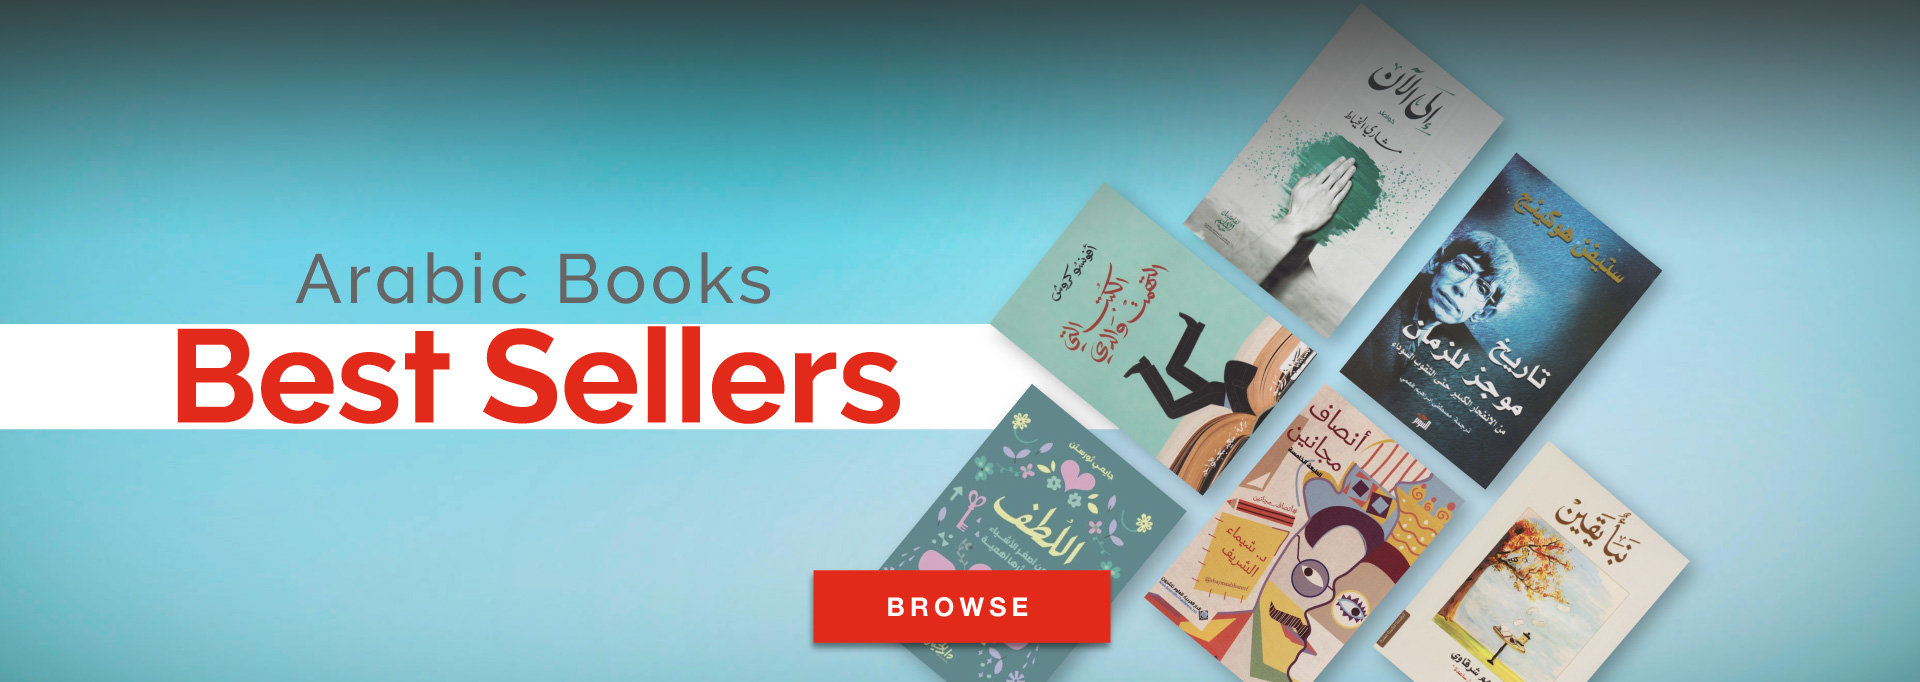 Arabic best sellers